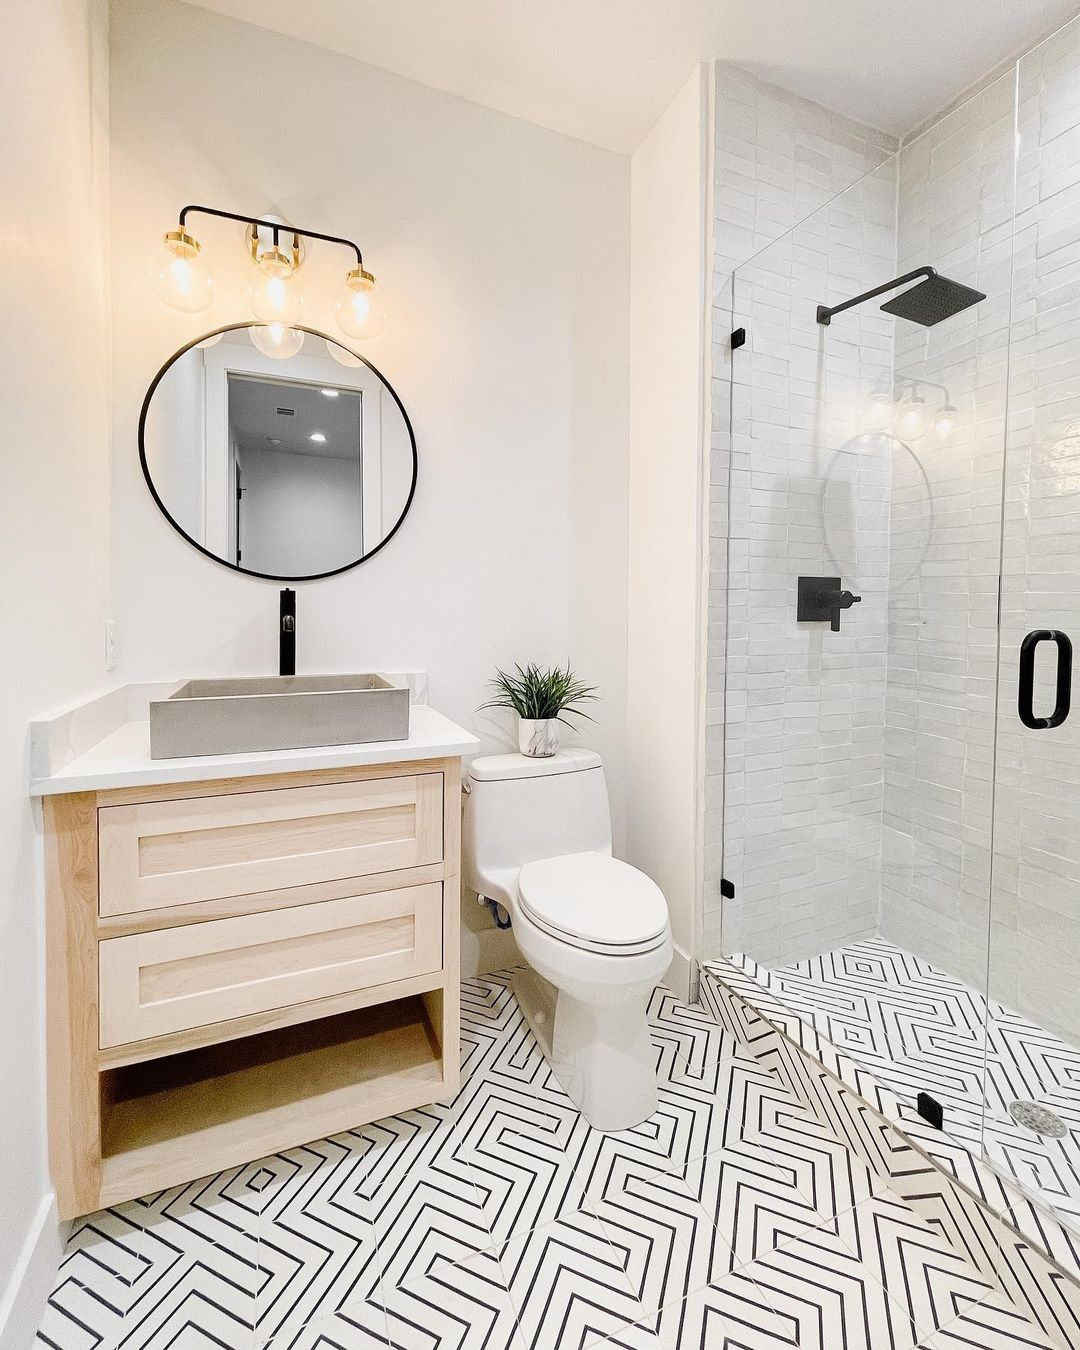 Stunning black and white cement tile flooring in bathroom (and zellige tile in shower) - @riadtile (design by @the.little.bird). #cementtile #tileflooring #bathroomtile